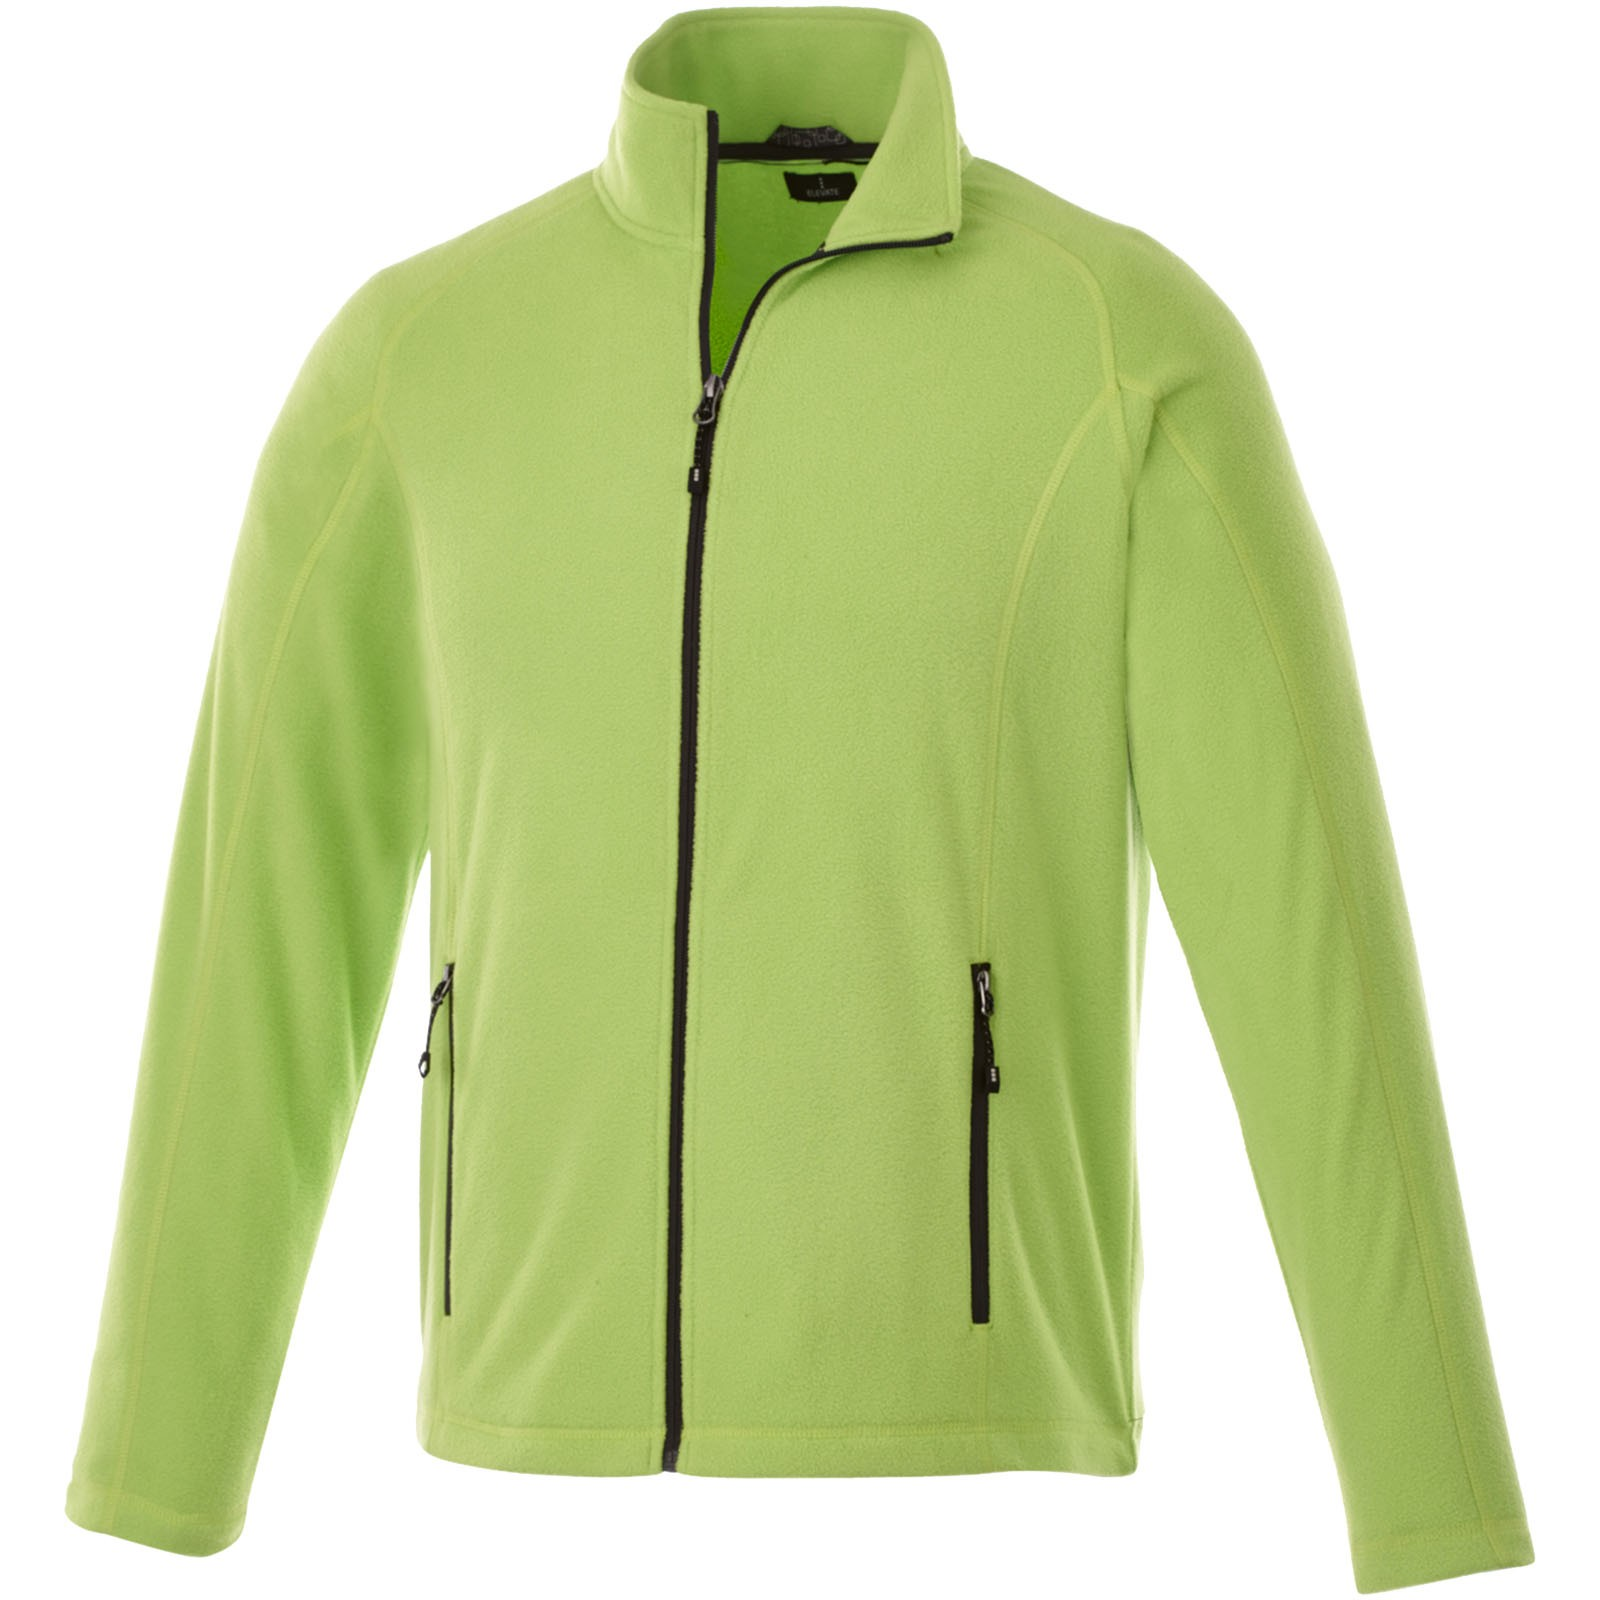 Rixford polyfleece full zip - Apple Green / XXL